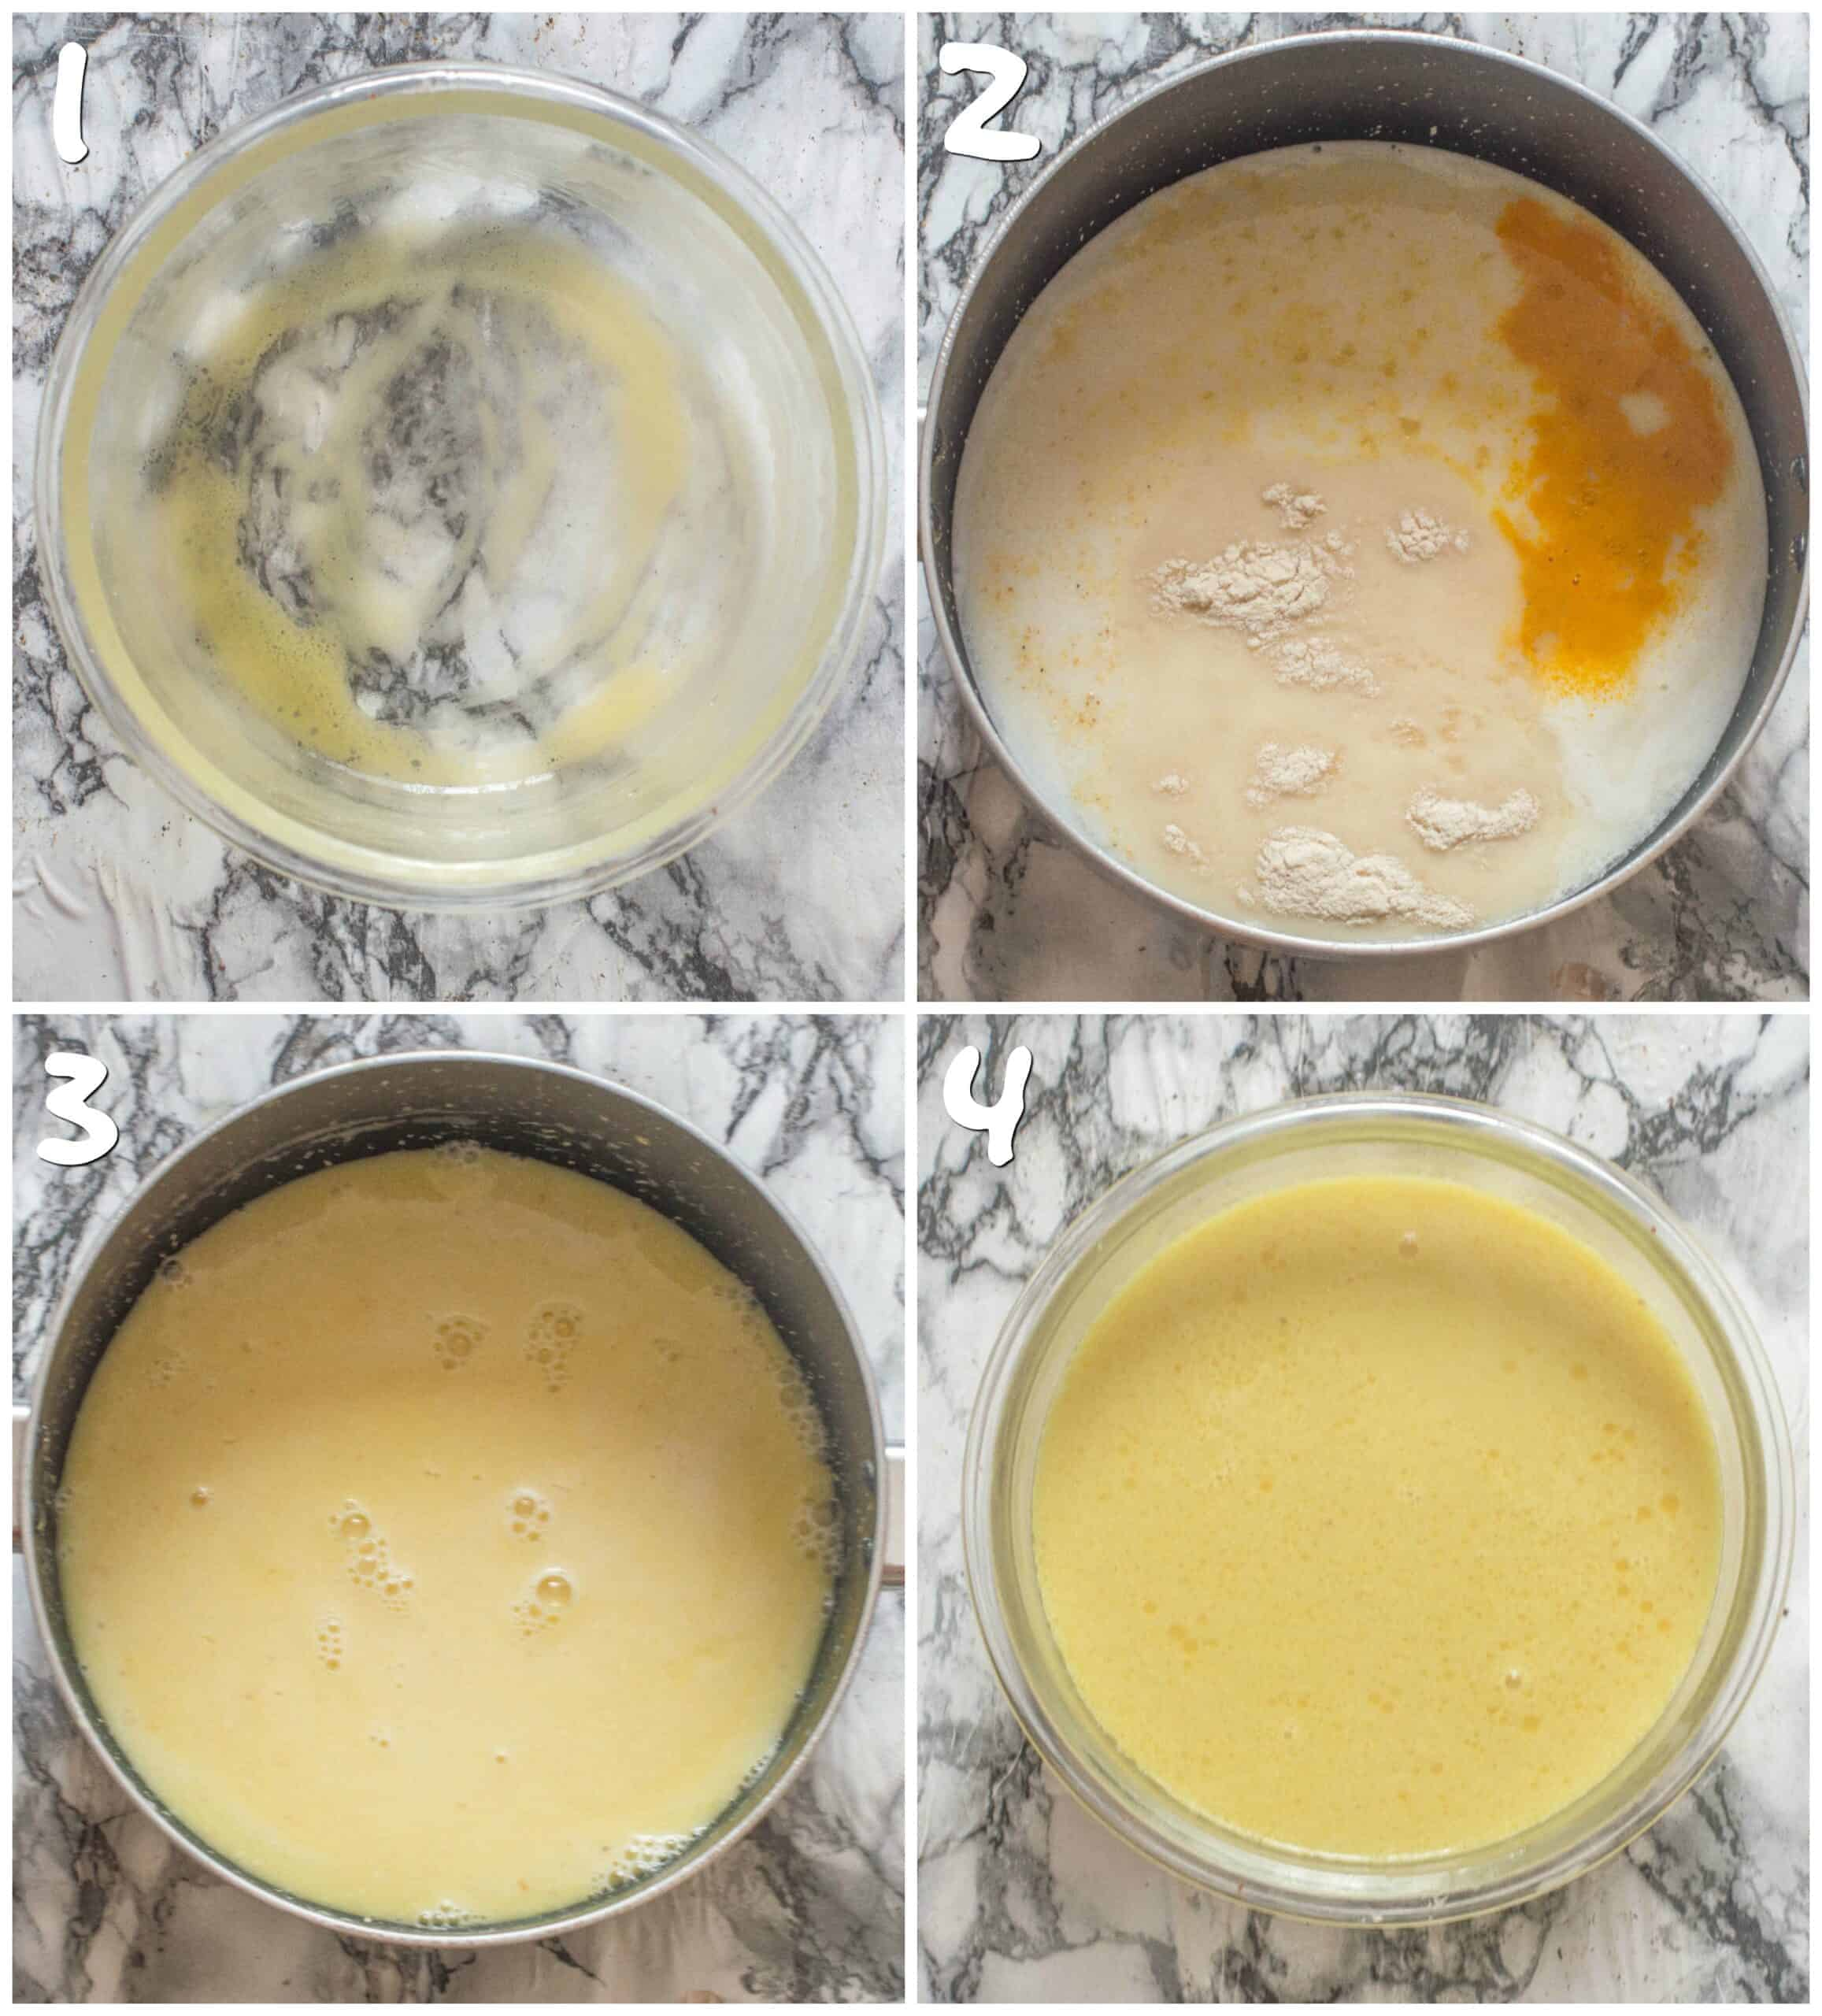 steps 1-4 boiling the ingredients to make the cheese